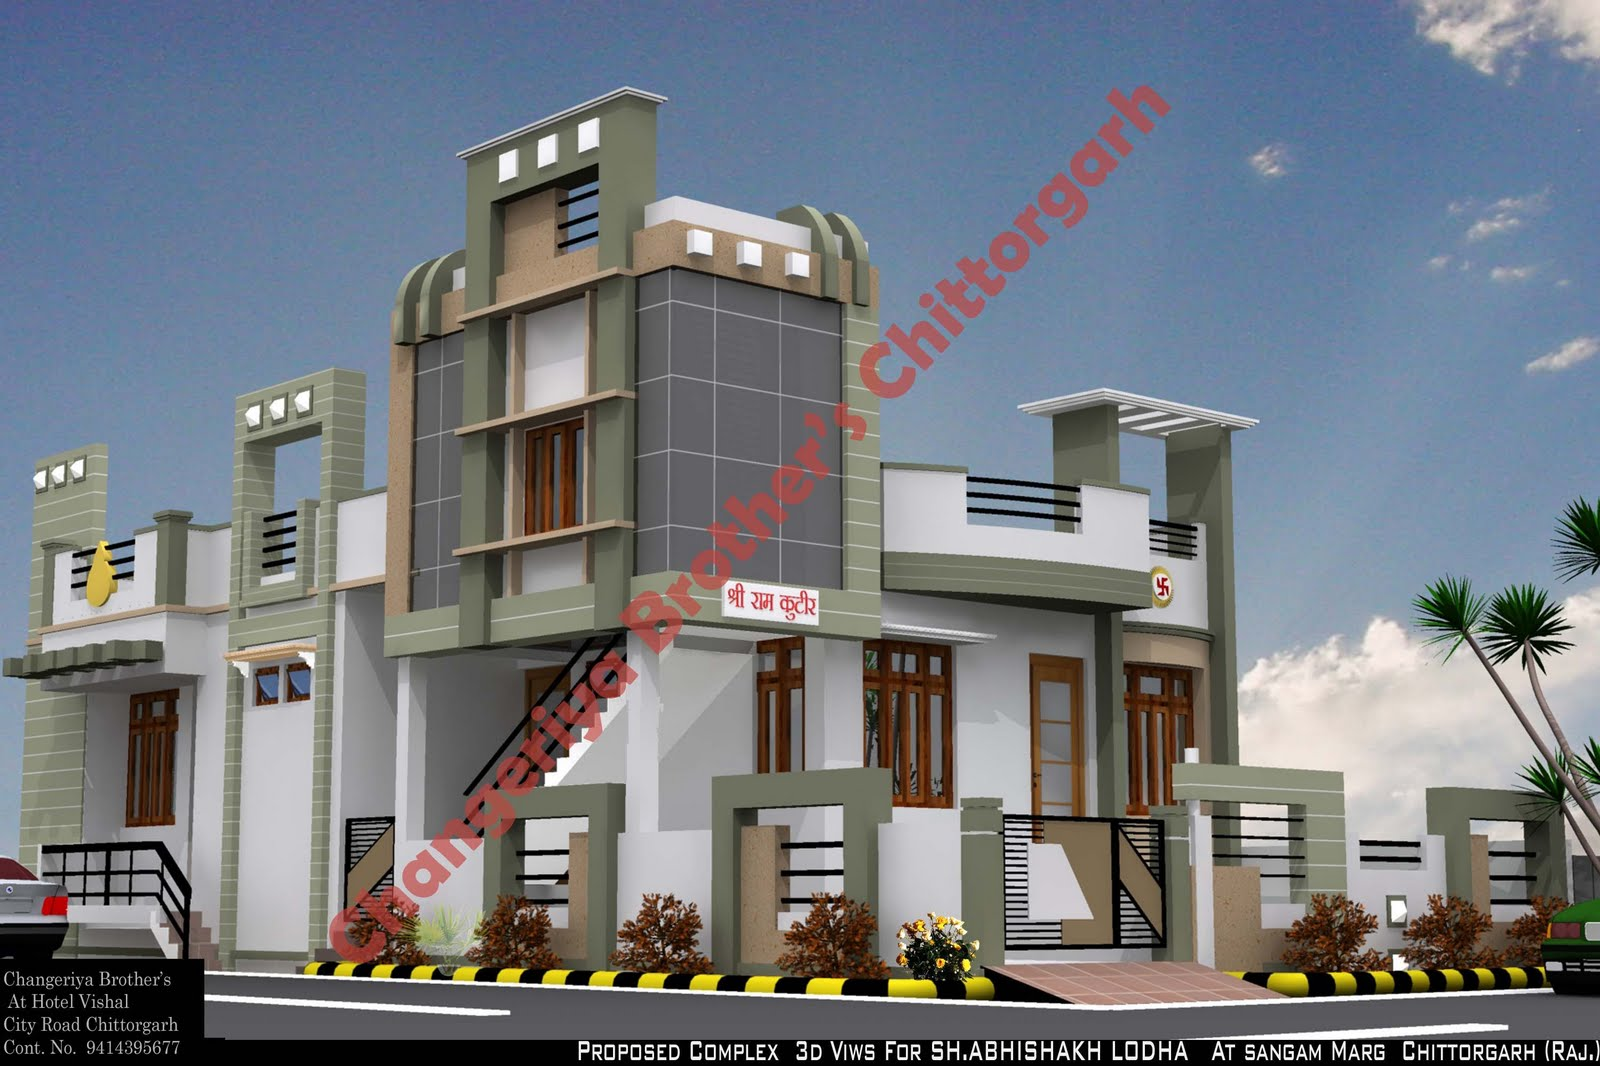 Mr raj kumar ji gadiya house plan exterior design Indian home exterior design photos